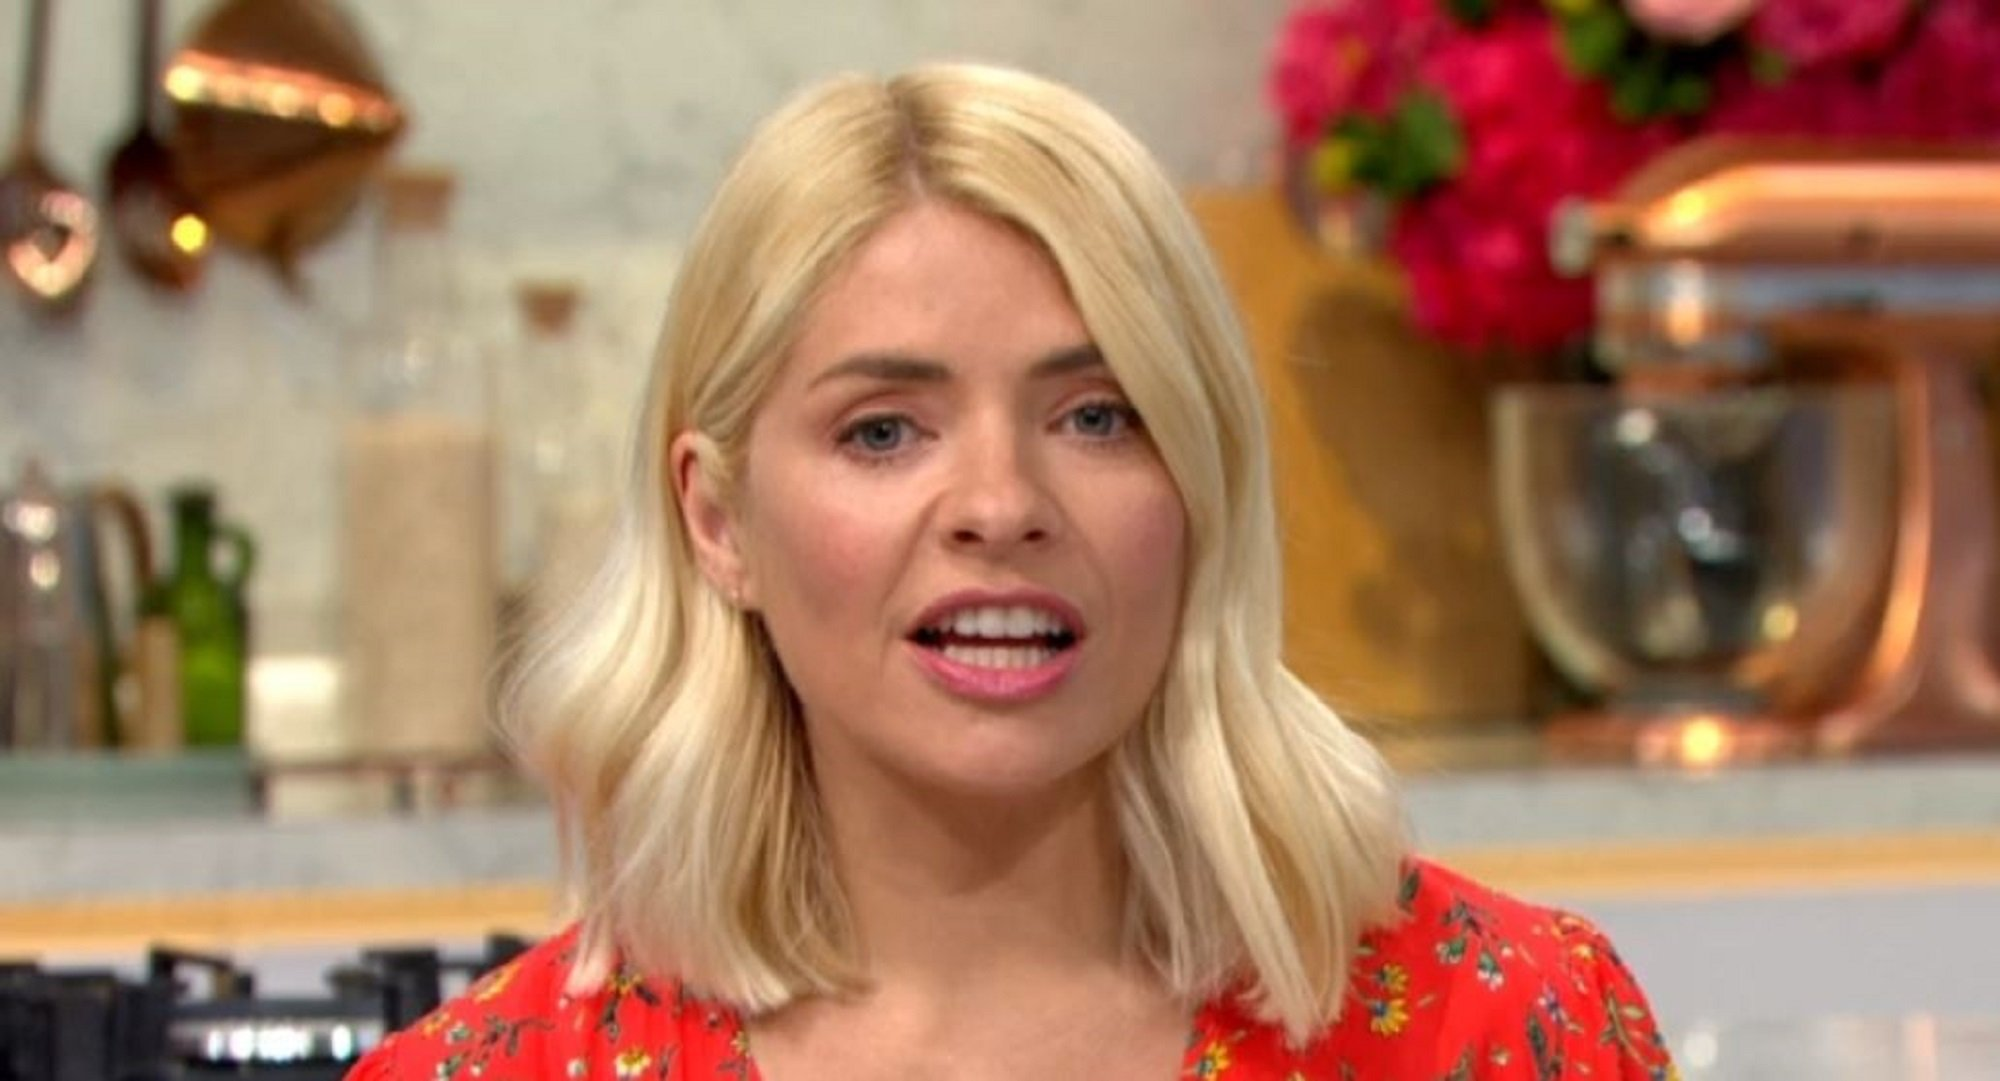 This Morning's Holly Willoughby admits avoiding rows with husband Dan in lockdown by 'turning a blind eye'